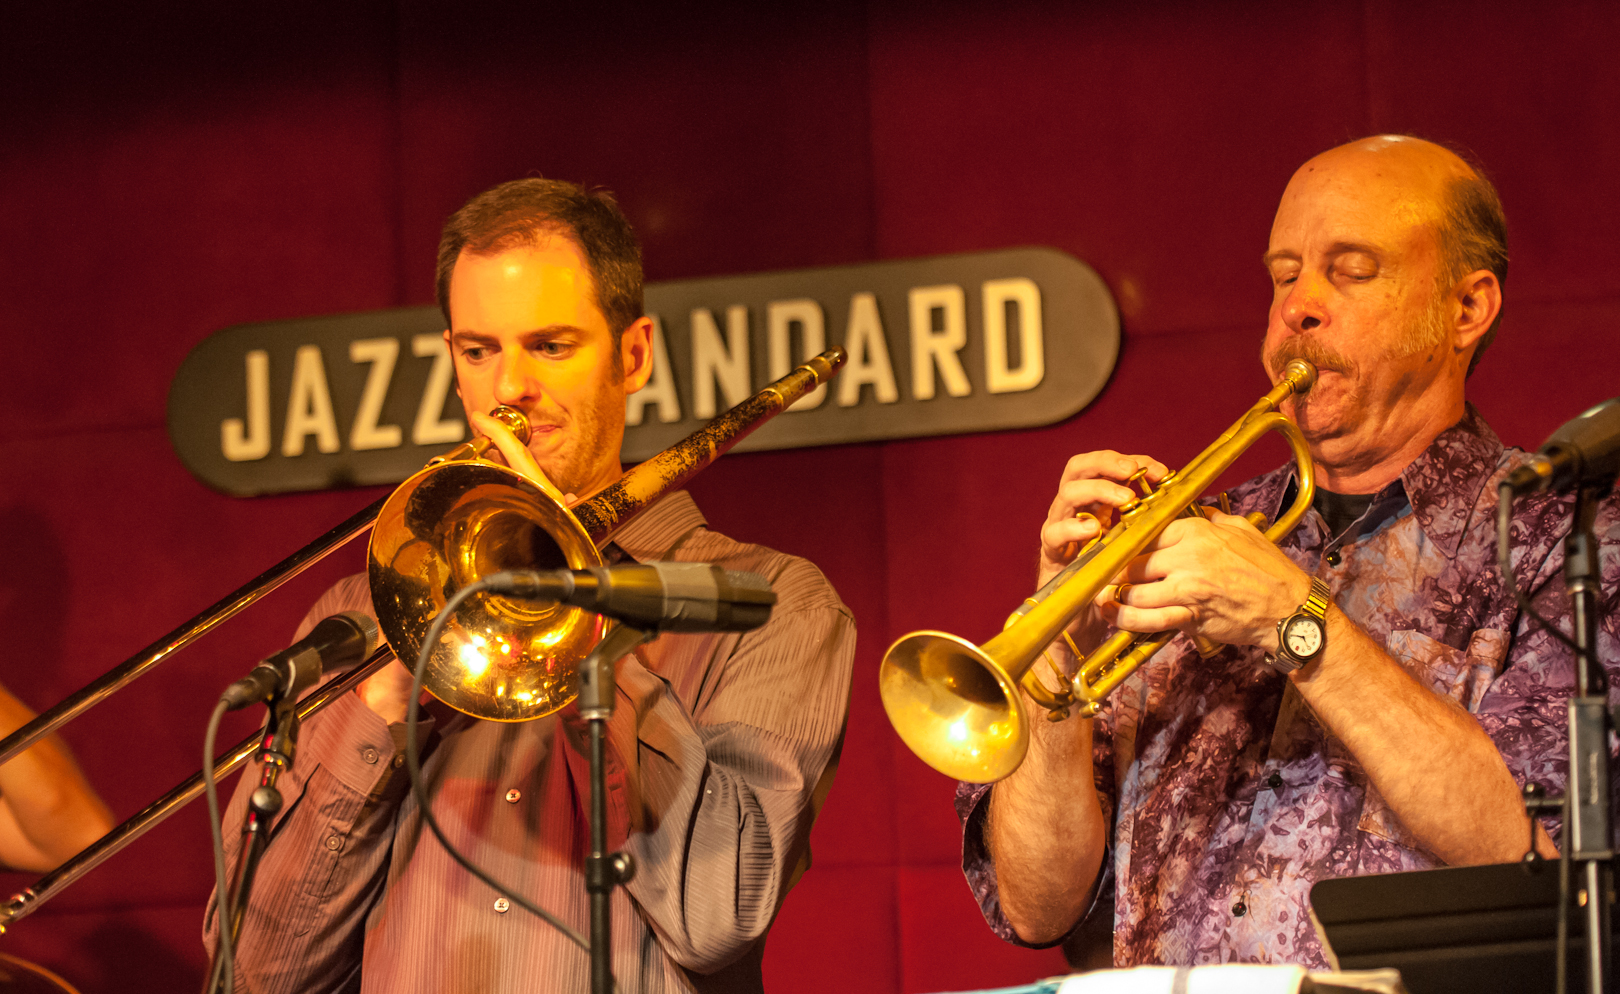 Joel Yennior and Tom Halter with the Either/Orchestra at the Jazz Standard